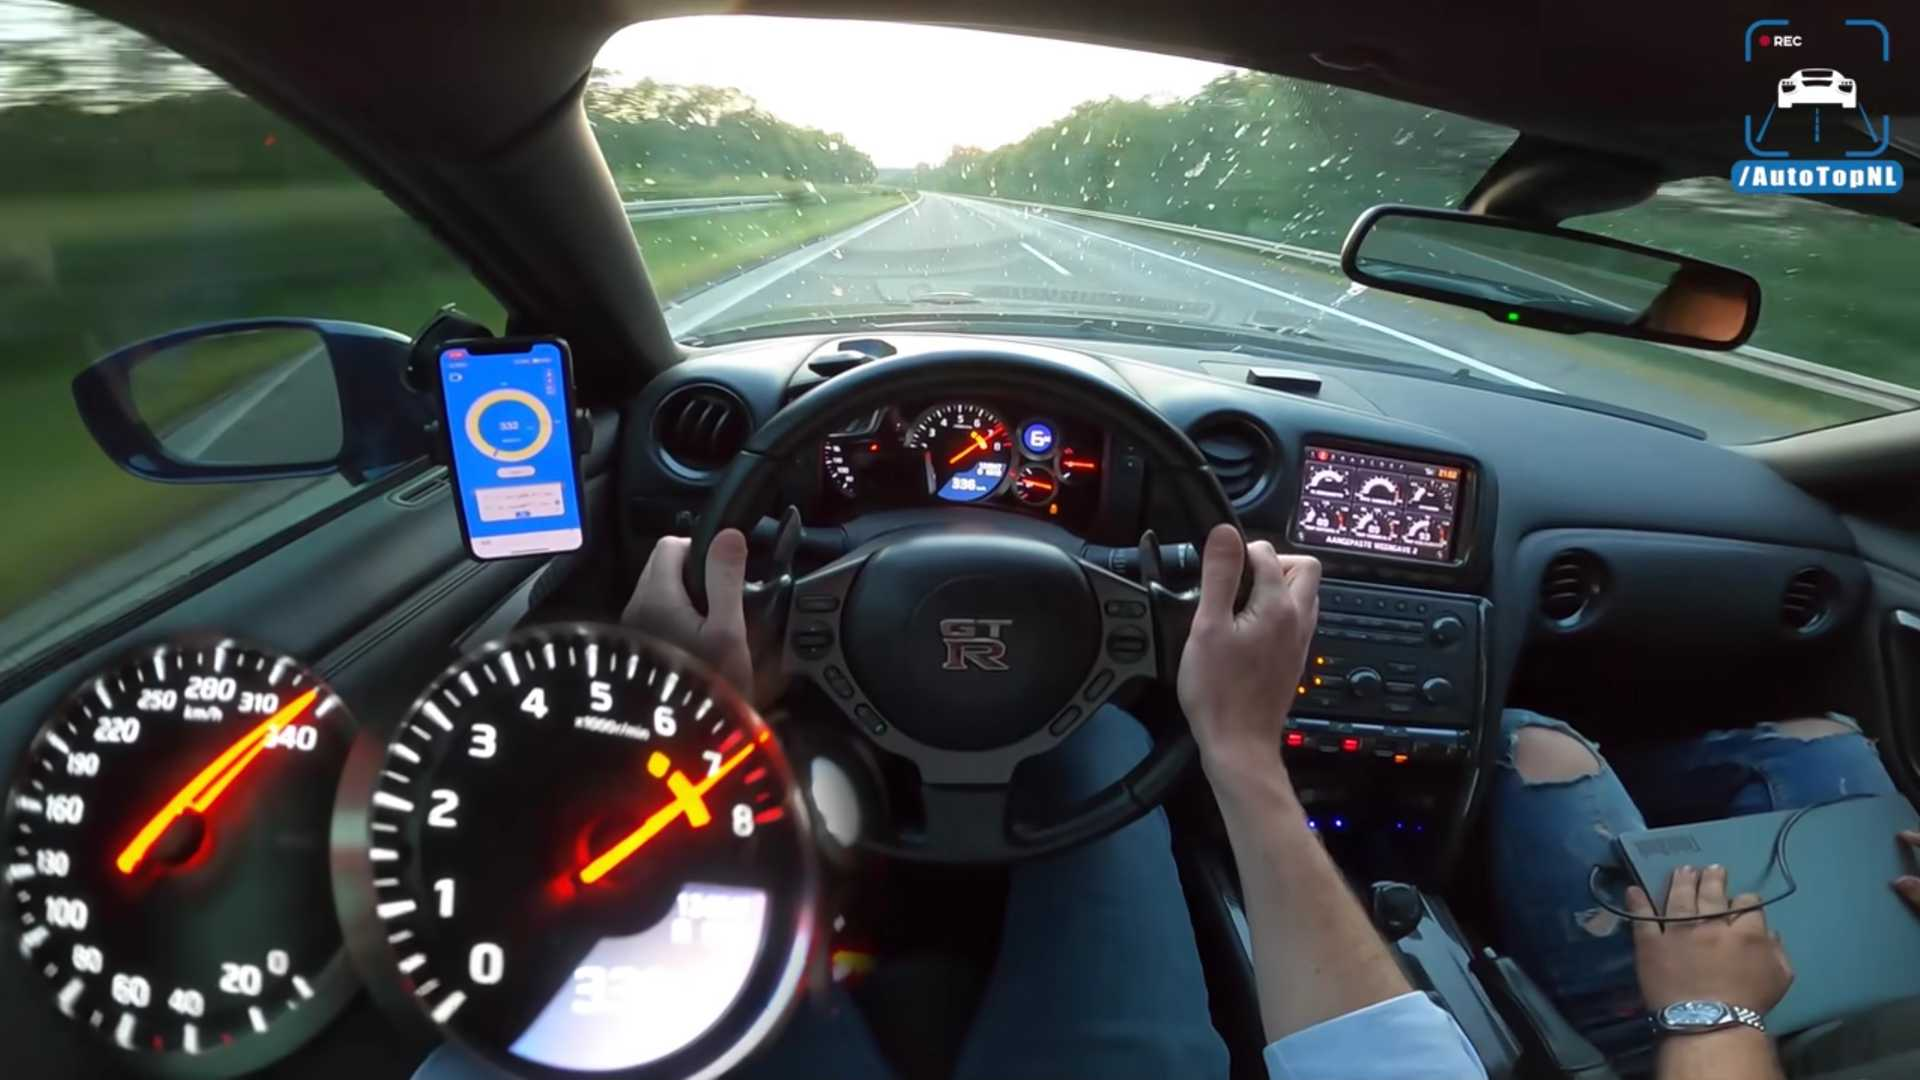 Watch 1,400-HP Nissan GT-R Hit 209 MPH On The Autobahn